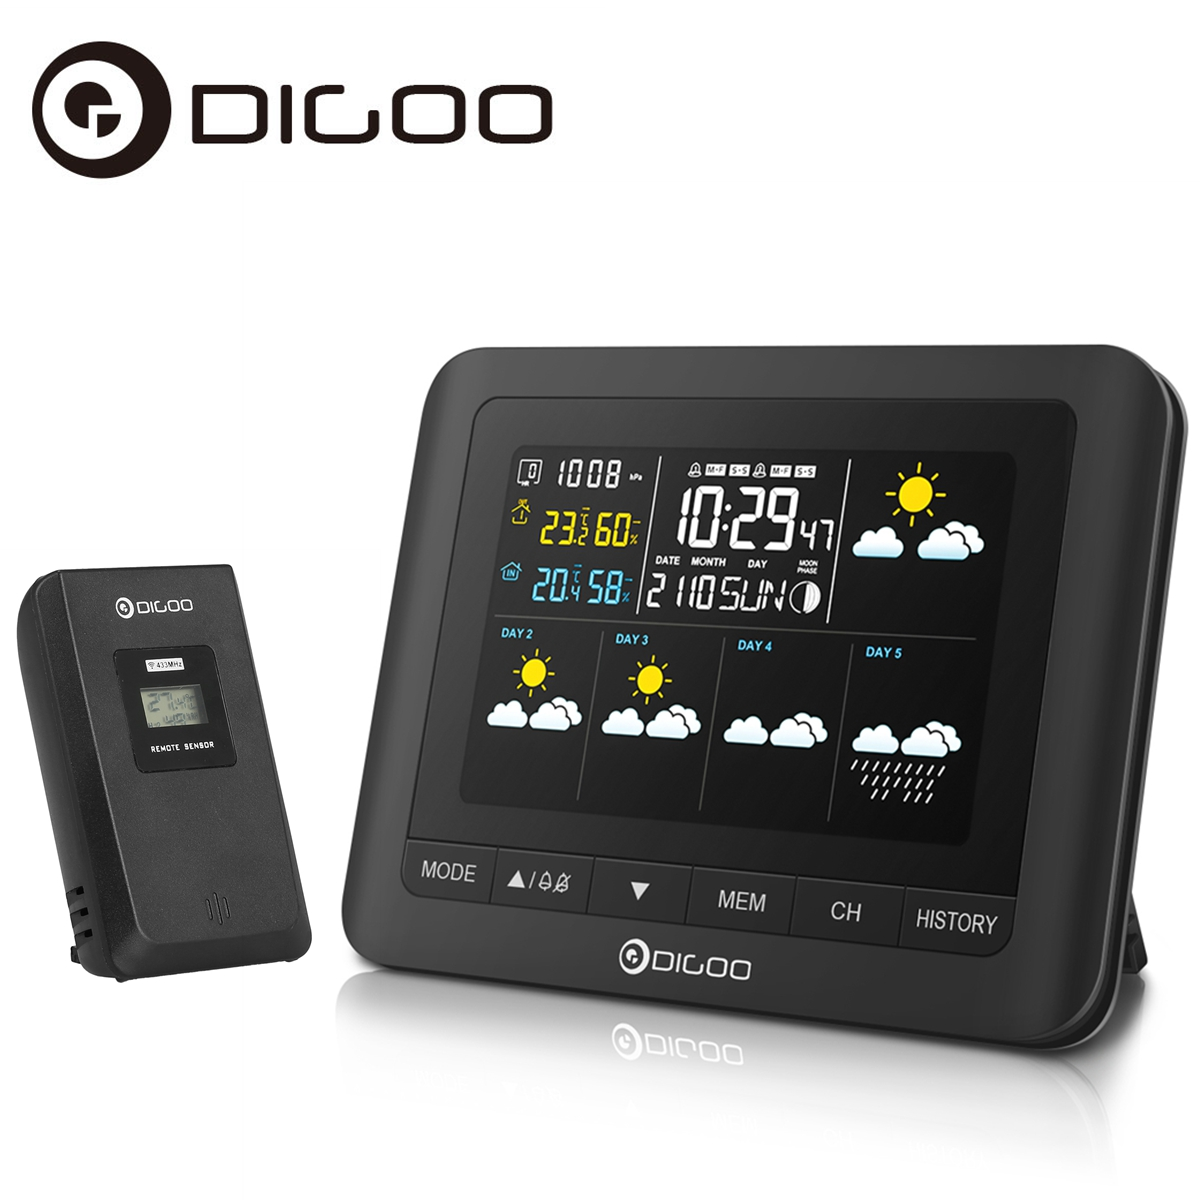 Digoo DG-TH8805 Wireless Five Day Forecast Weather Station,Digital Full-Color Screen,Indoor Outdoor Sensor... by